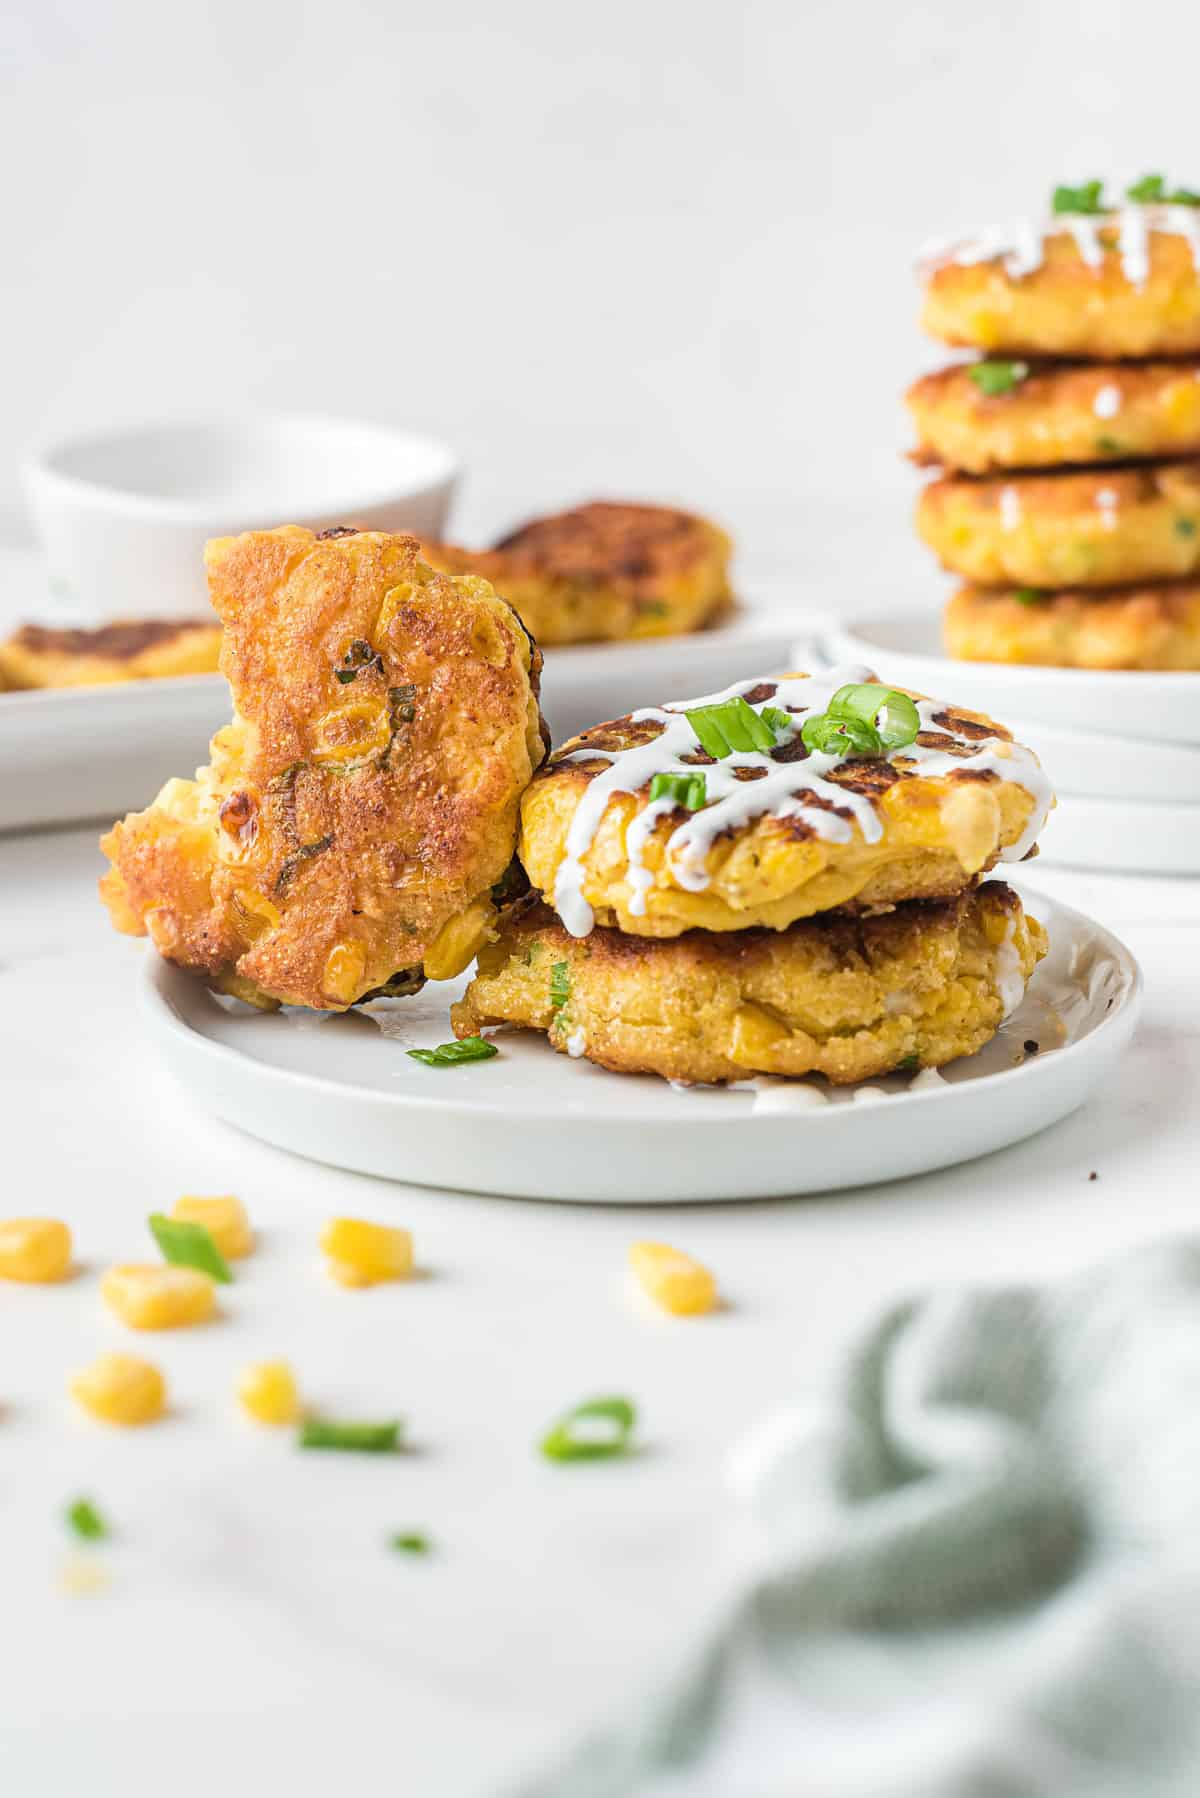 Corn fritters on a plate with sour cream and green onions.